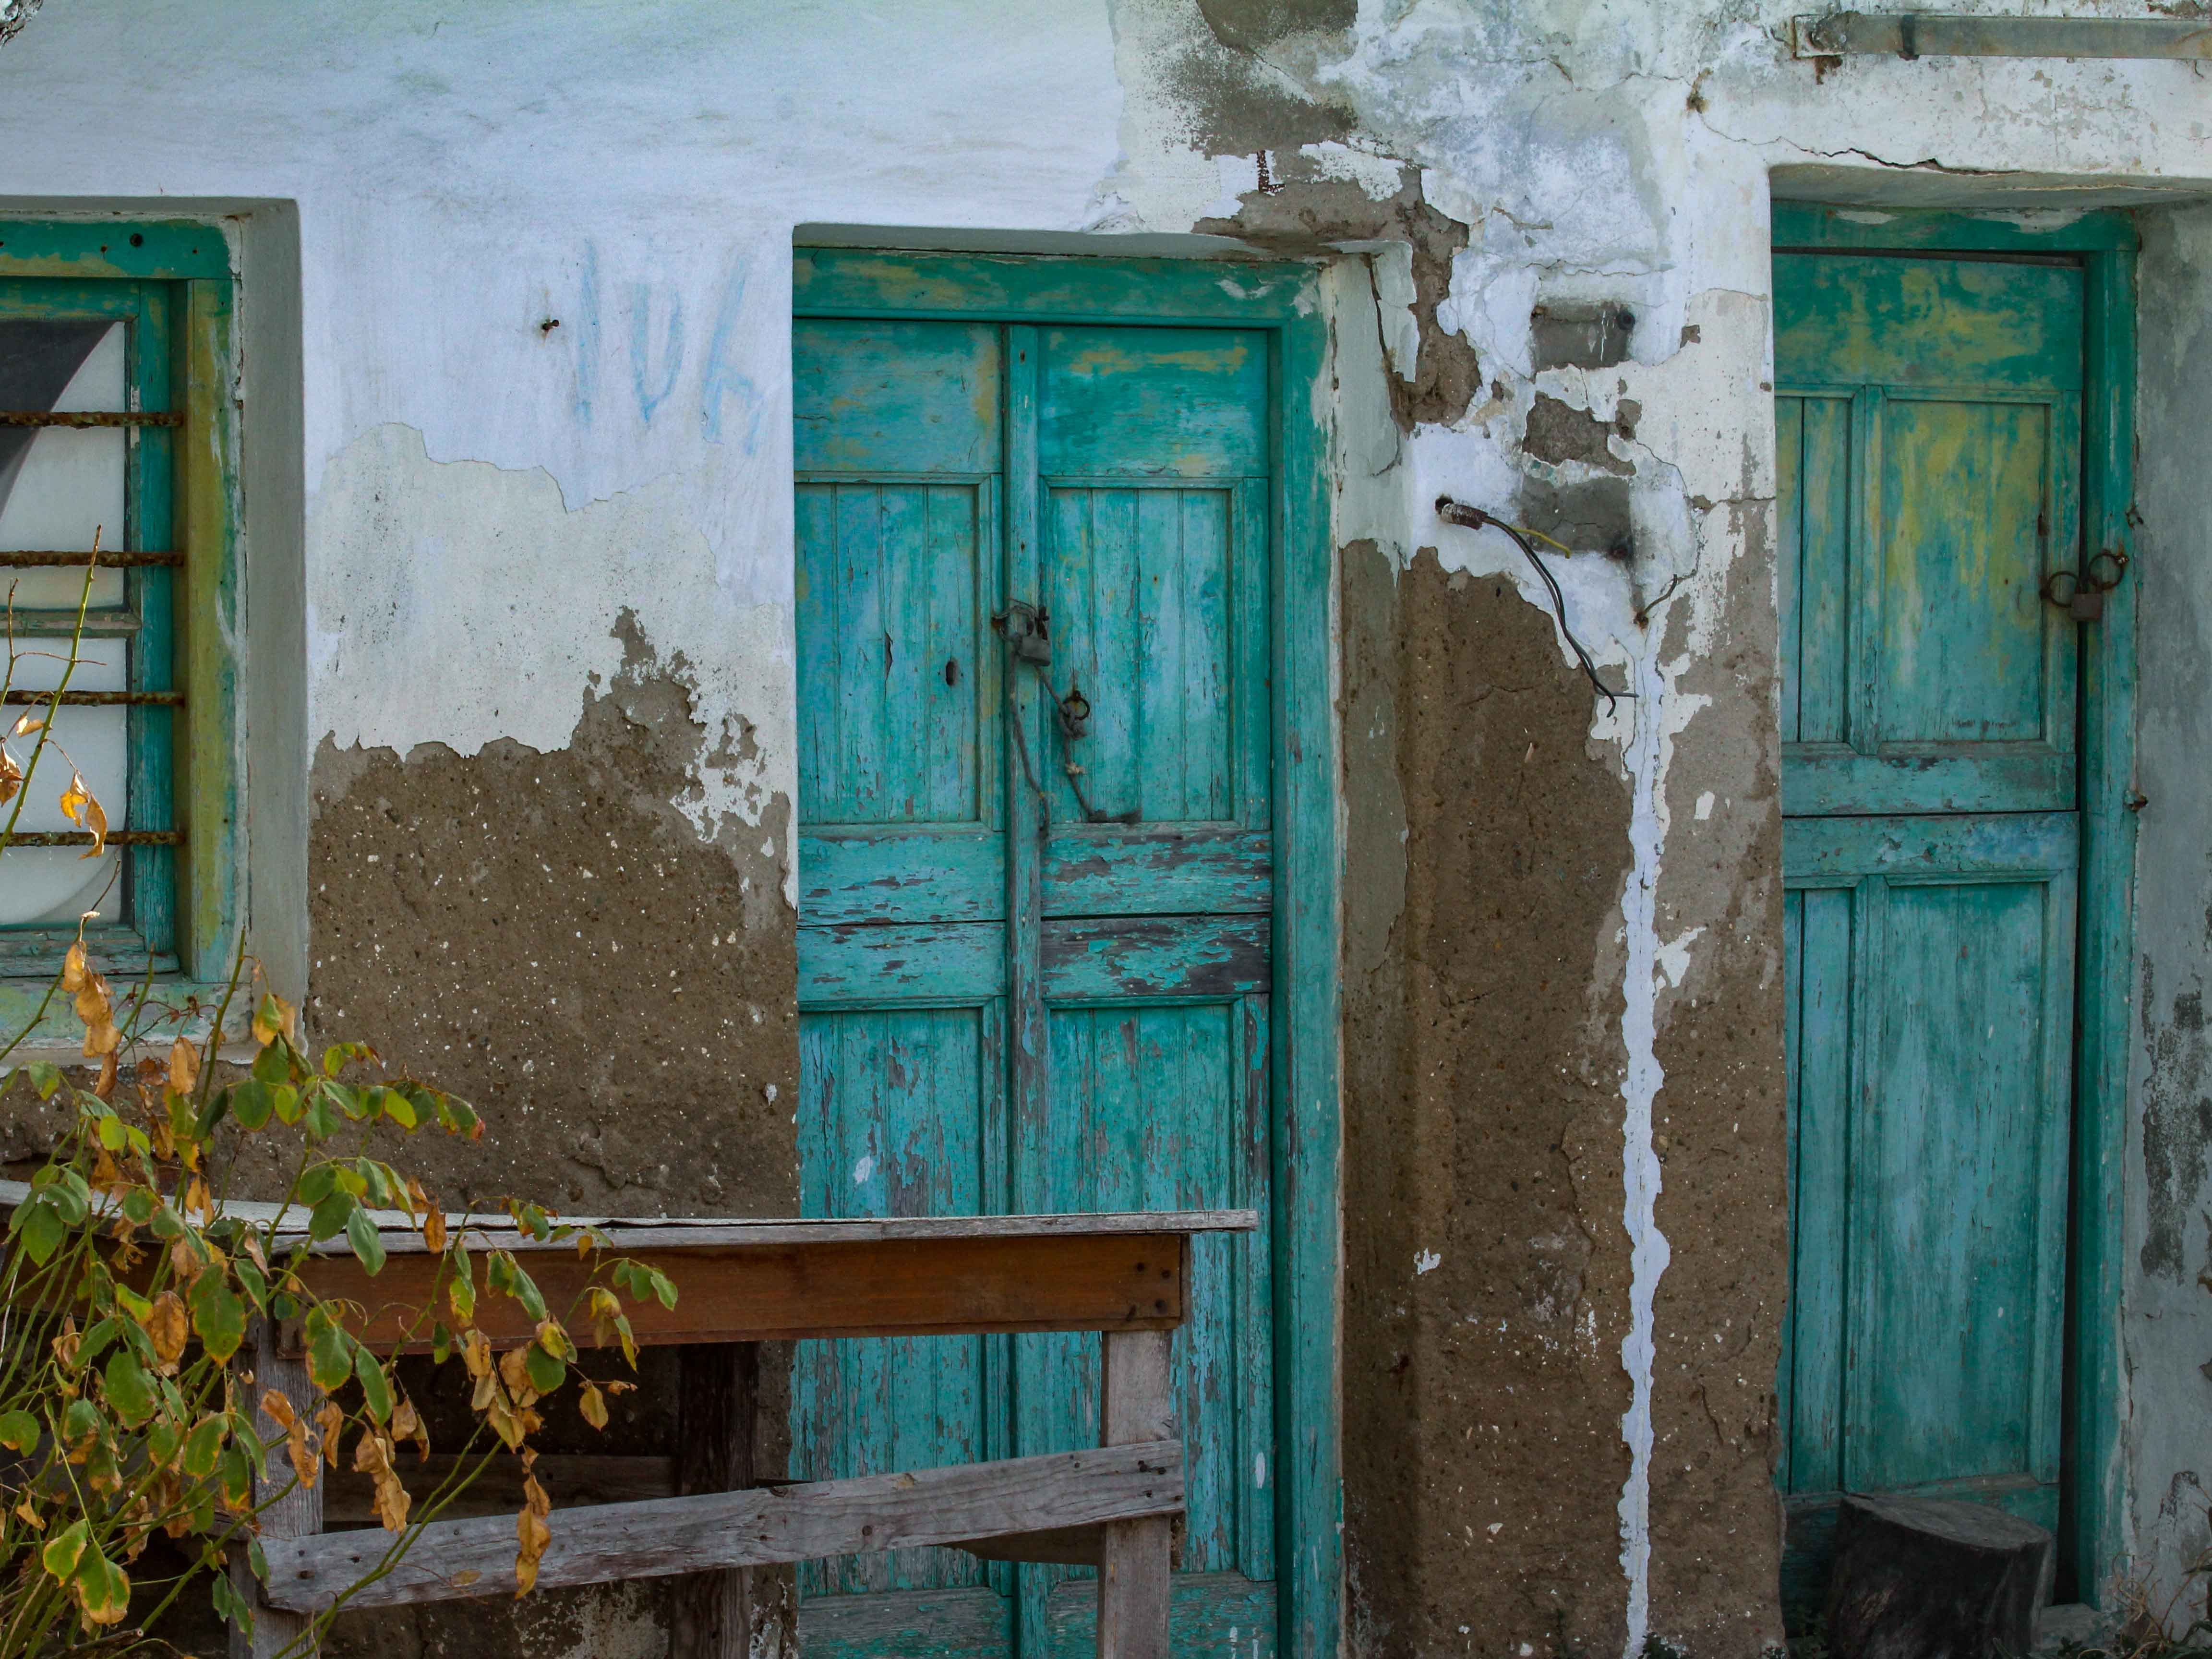 Time stands still at the old settlement of Panagia, located on a hill in the center of Serifos.